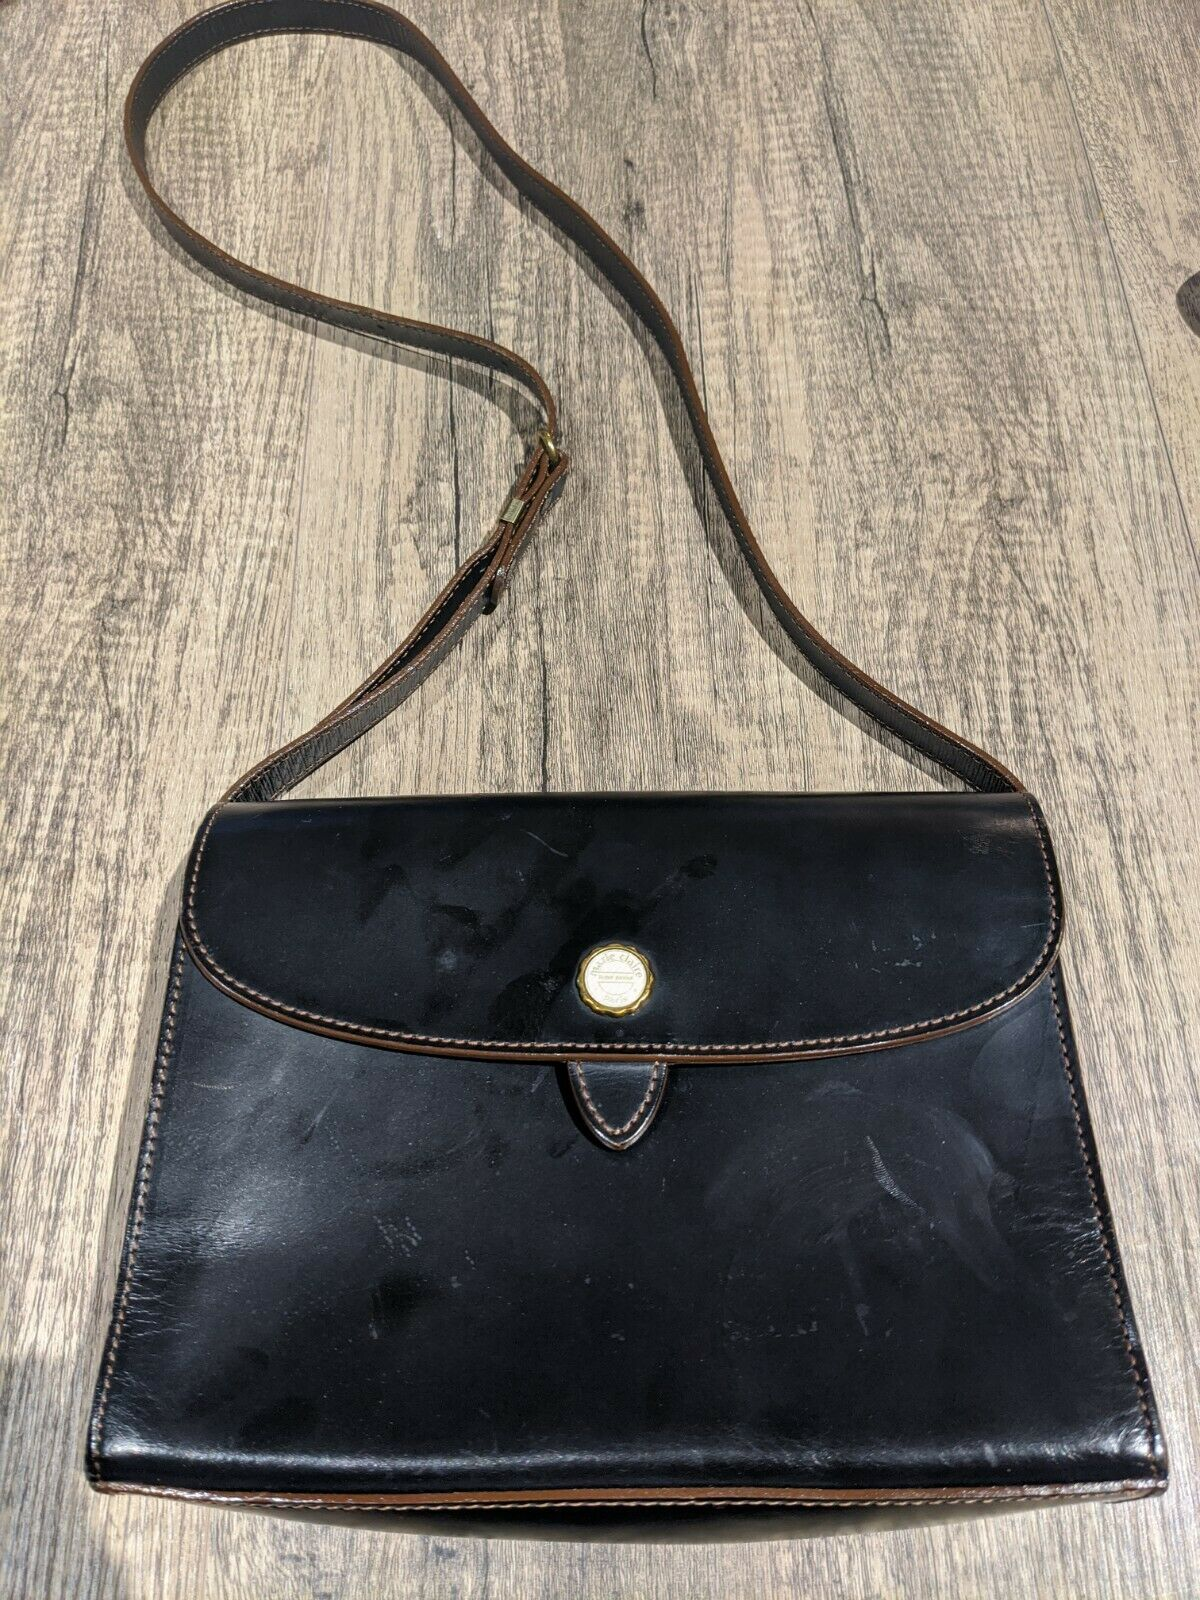 Authentic Marie Claire Black Small Leather Handbag - image 1